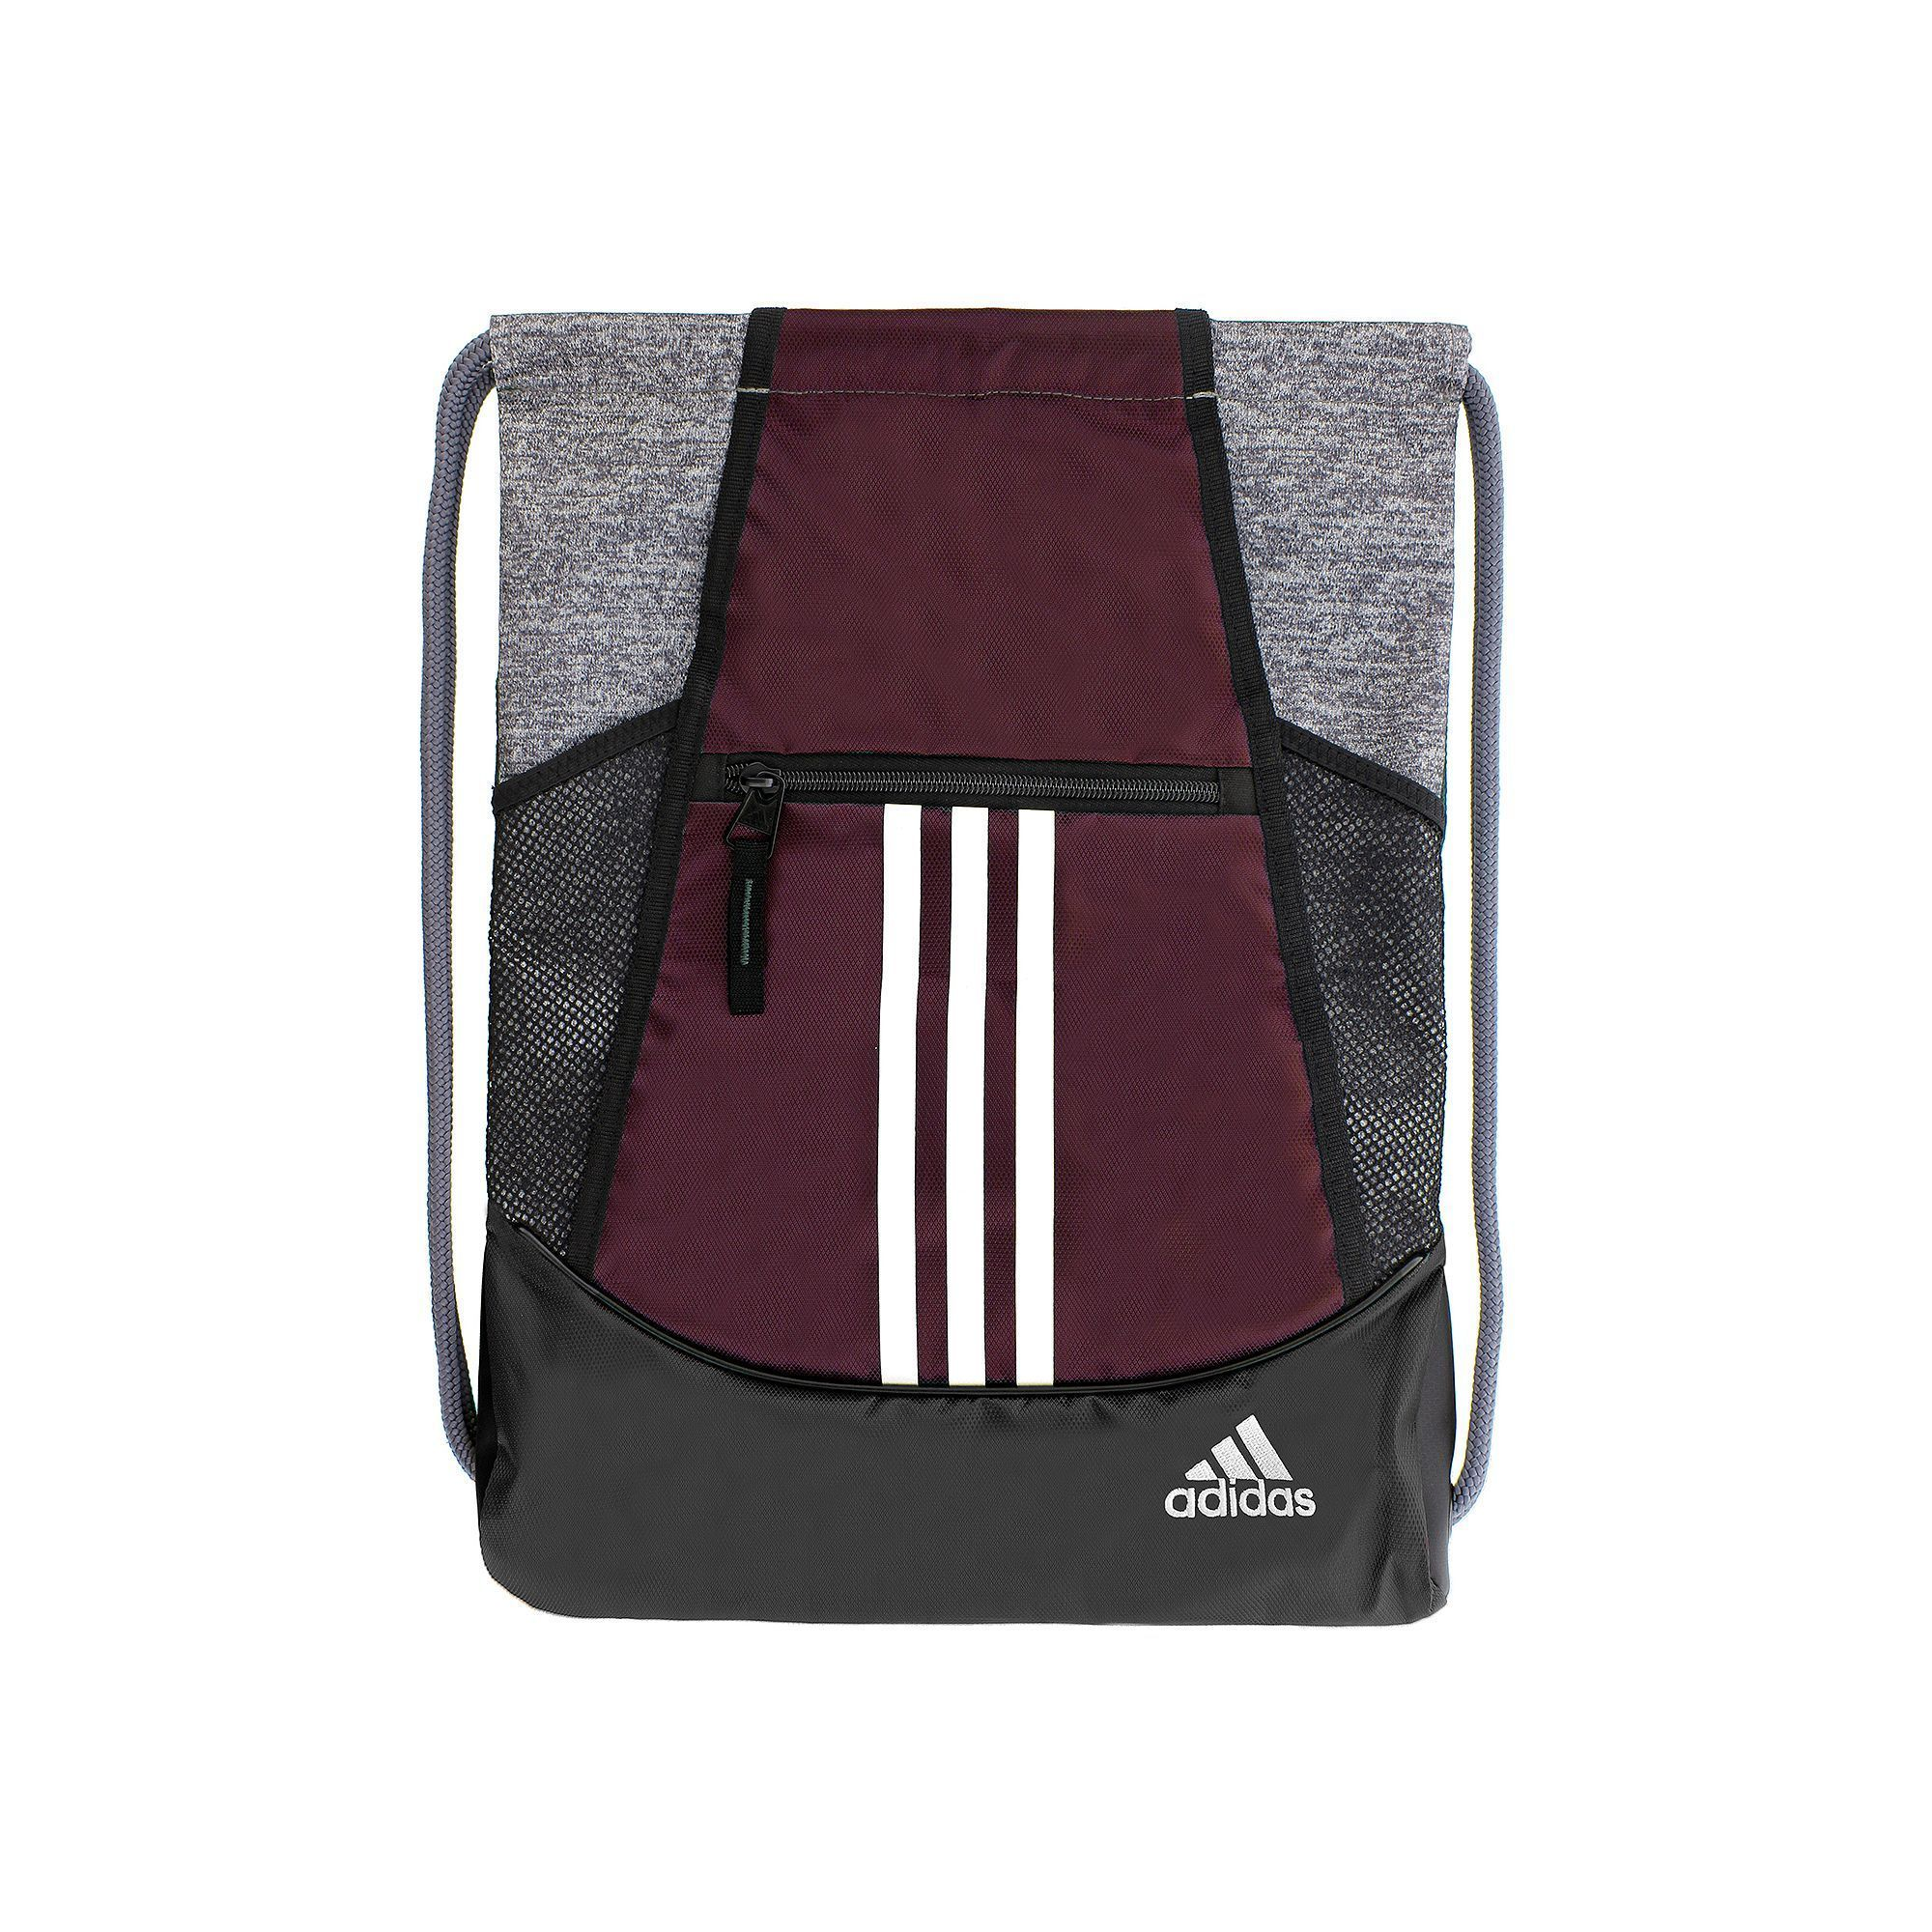 acc8cccc97b4 Adidas Alliance Drawstring Backpack